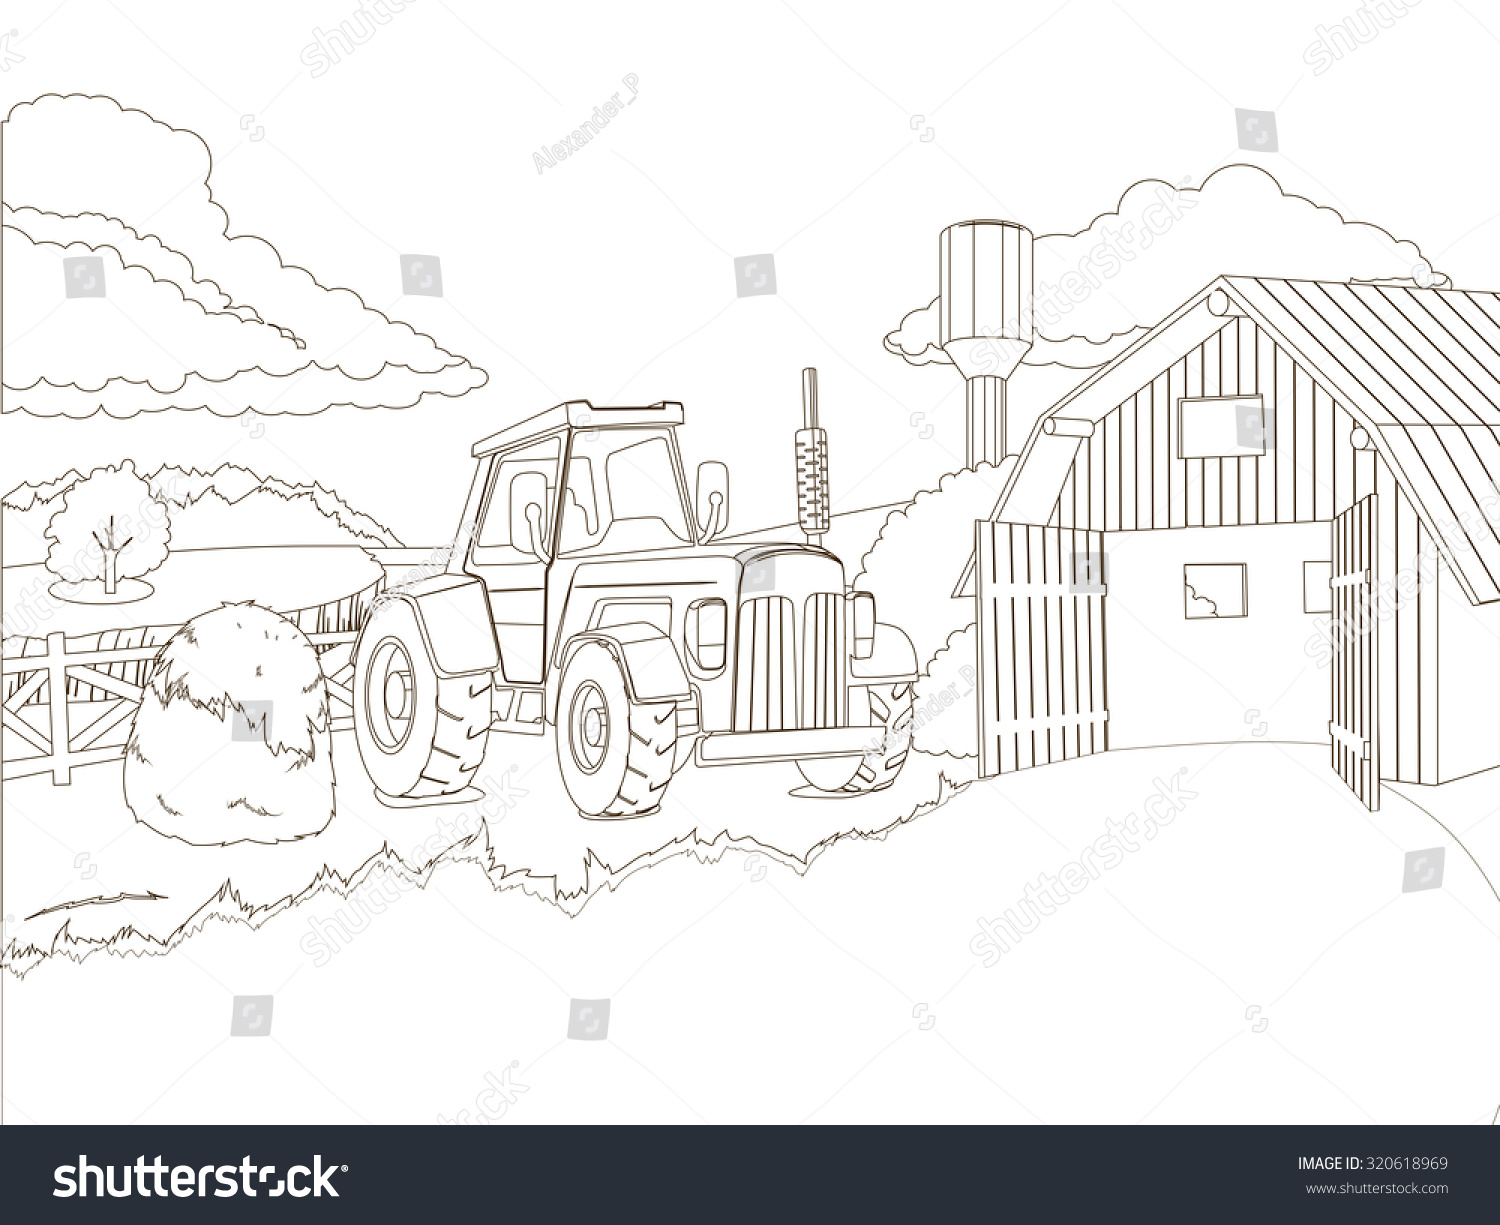 Tractor On Farm Coloring Book Raster Stockillustration 320618969 ...